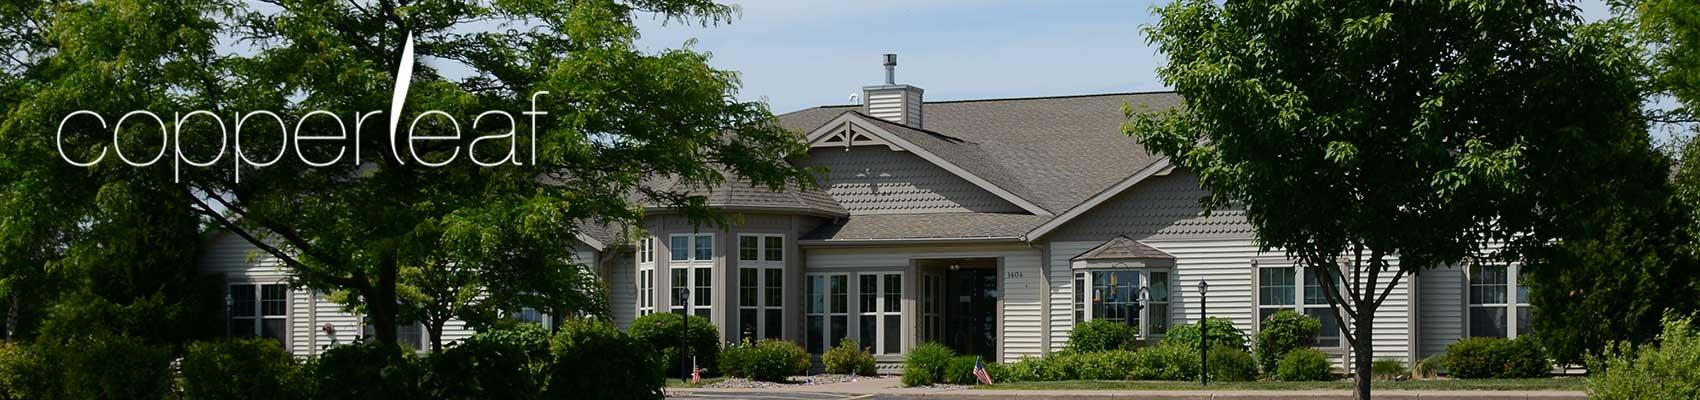 Assisted Living in Stettin Wisconsin Marathon County